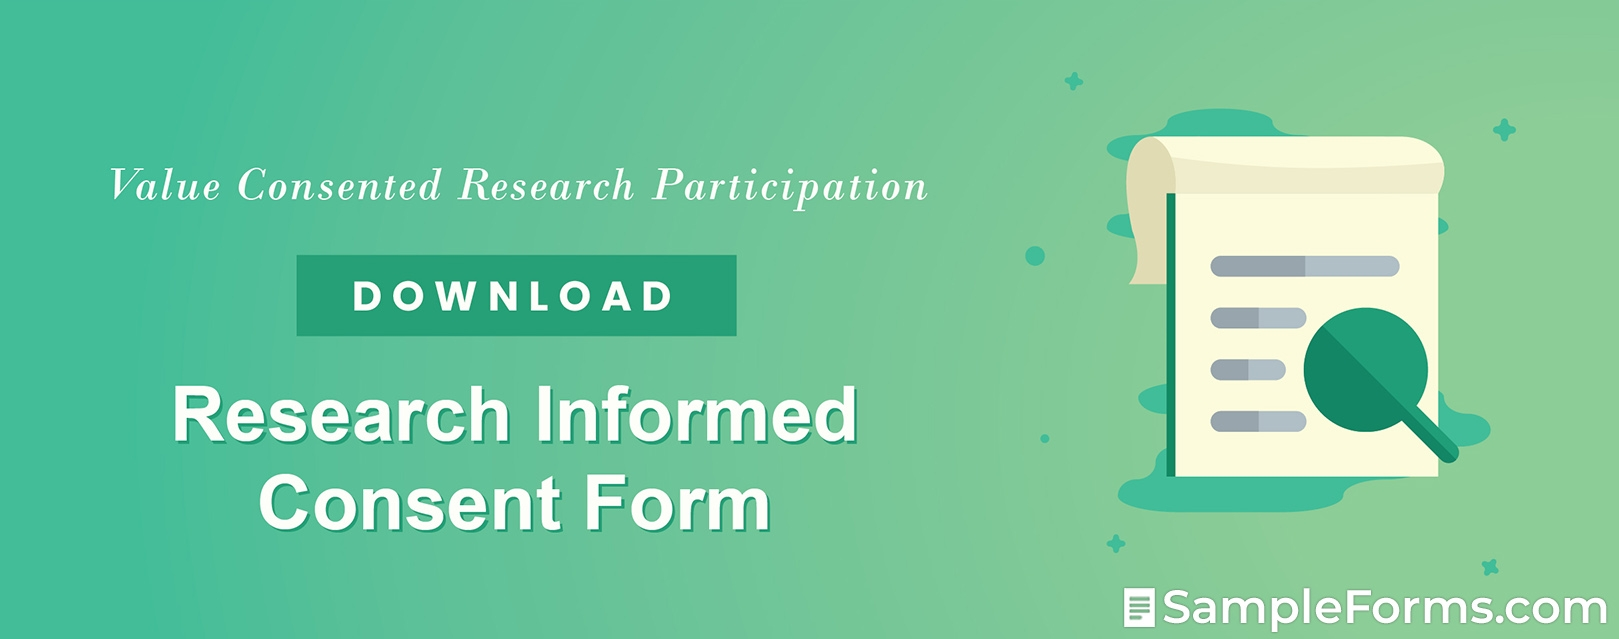 Research Informed Consent Form